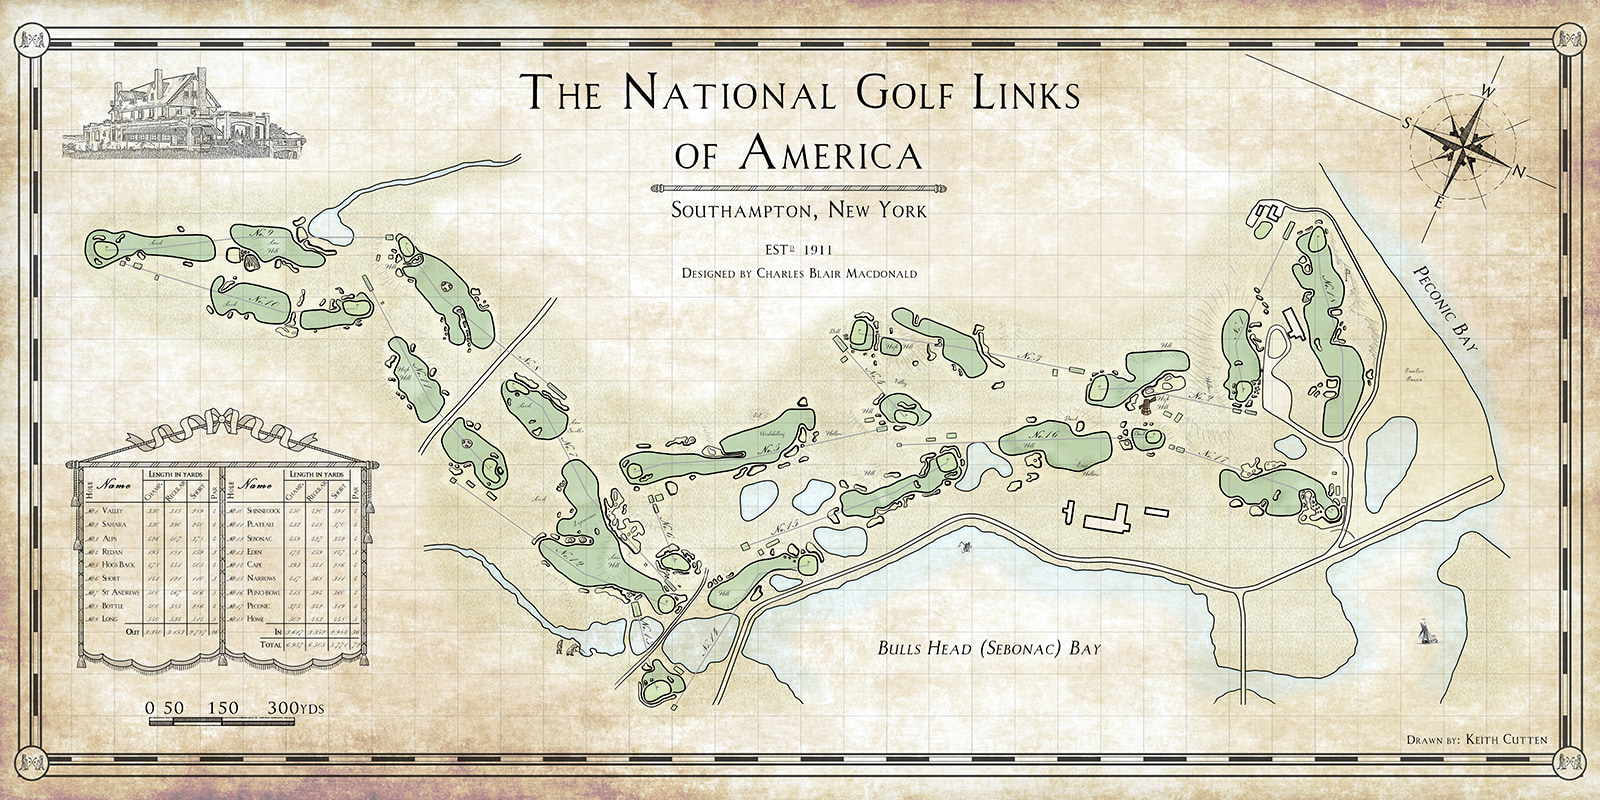 Course map of NGLA - Credit: Keith Cutten